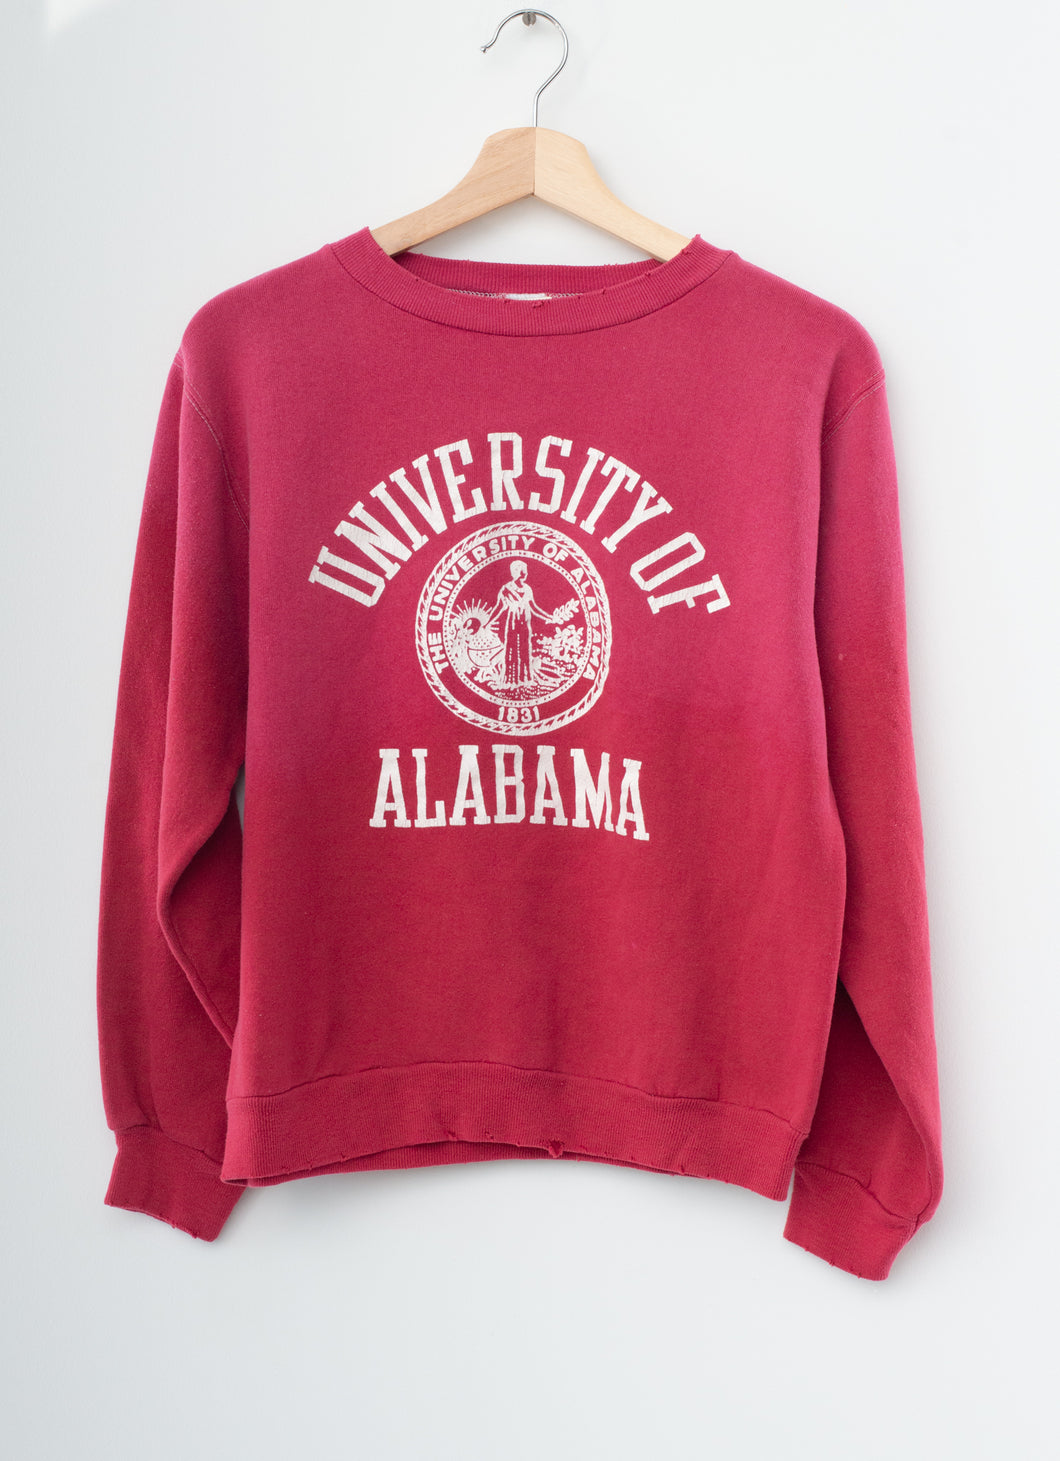 University of Alabama Sweatshirt